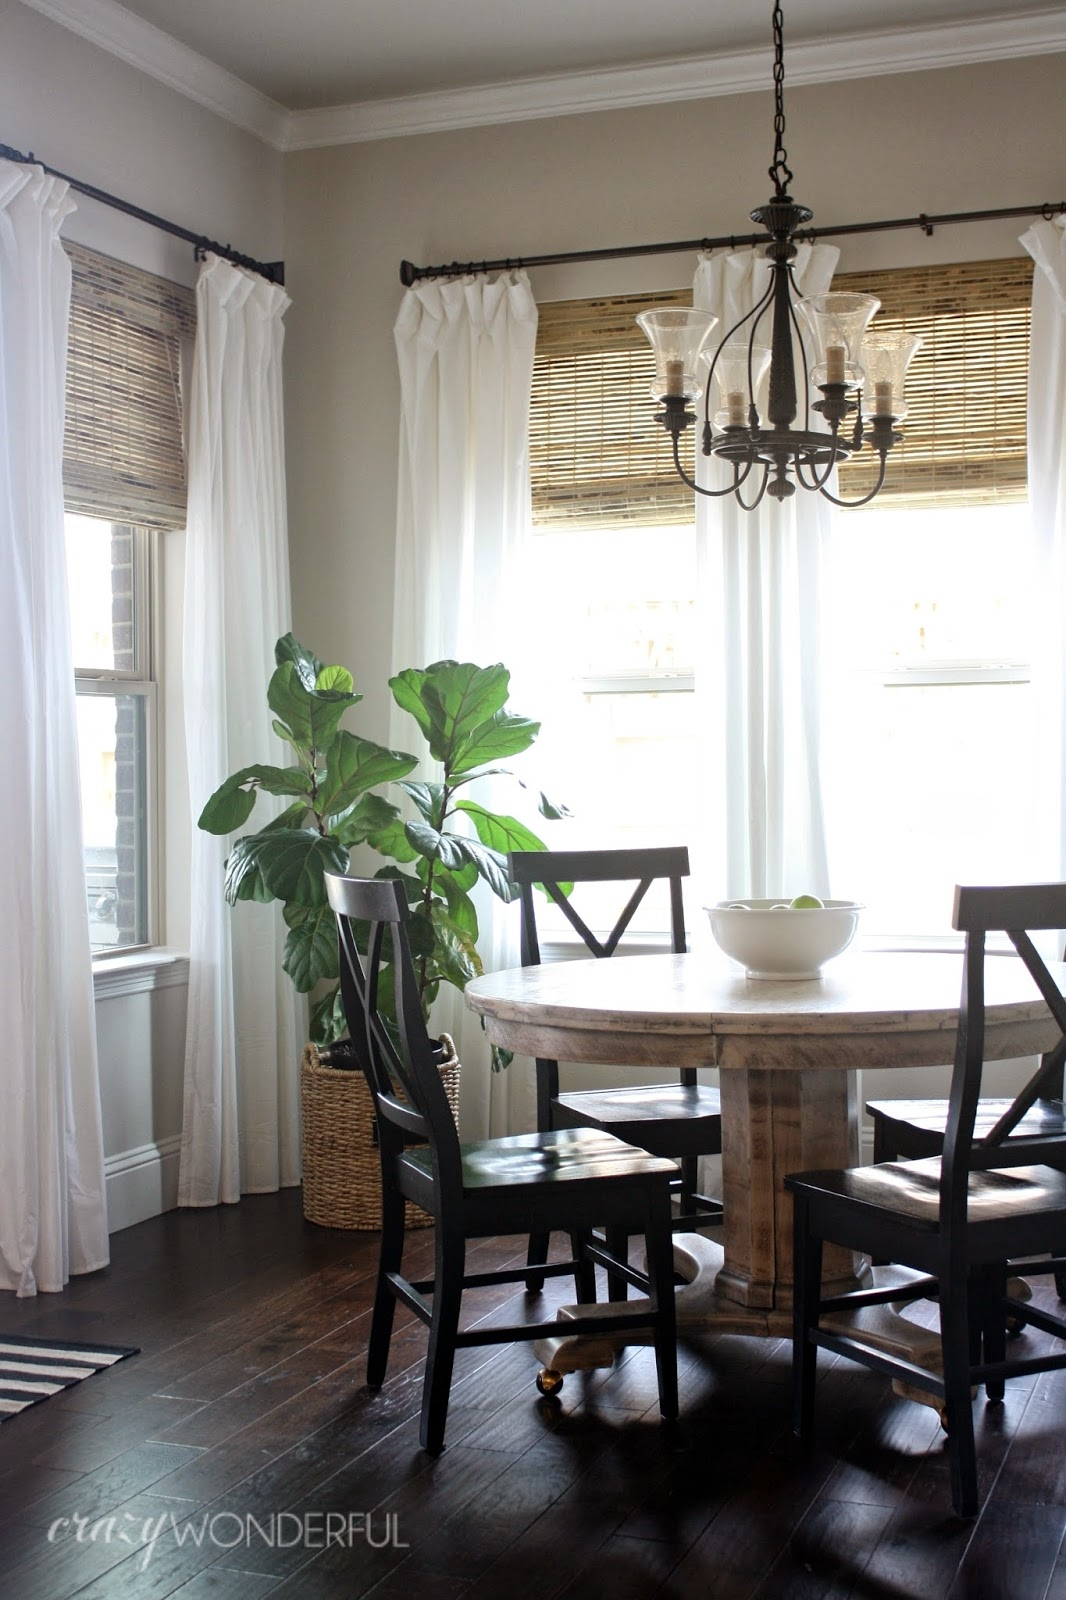 28 Ways To Spruce Up White Curtains Roman Shades Love The And Regarding Natural Fiber Curtains (Image 3 of 15)